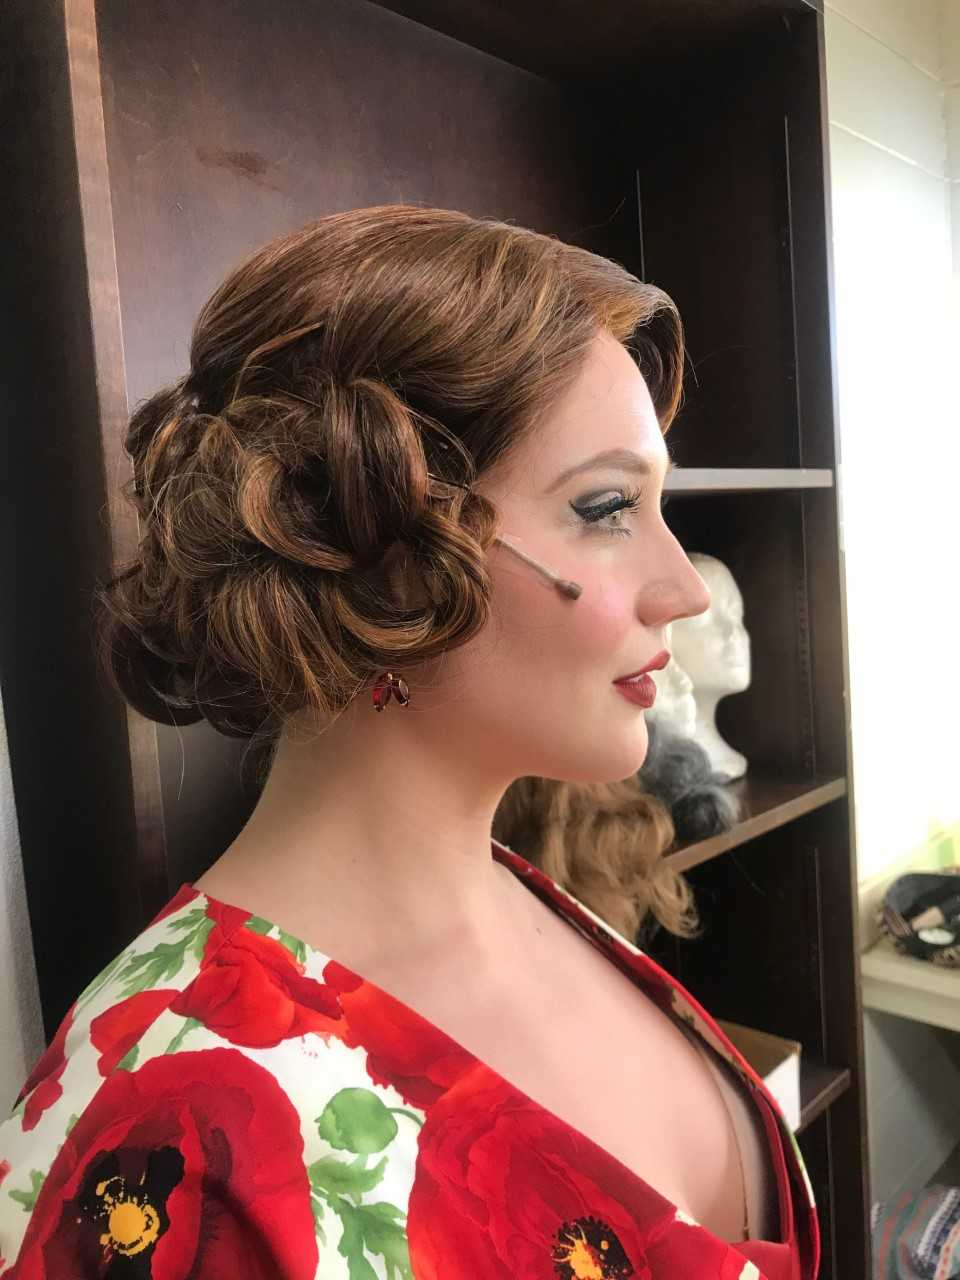 This wig was dyed and styled to fit the red color that the director and costume designer wanted.